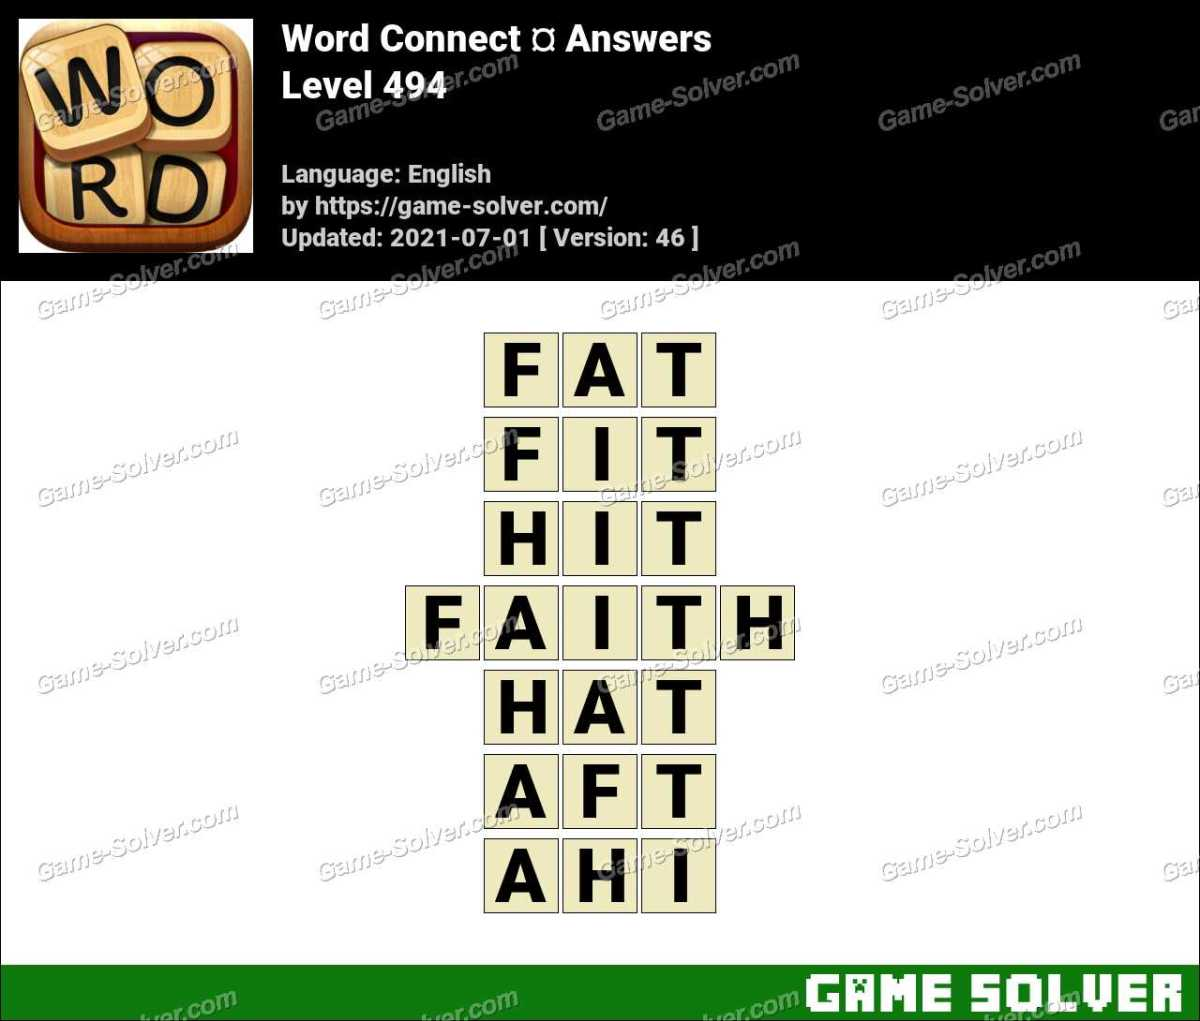 Word Connect Level 494 Answers